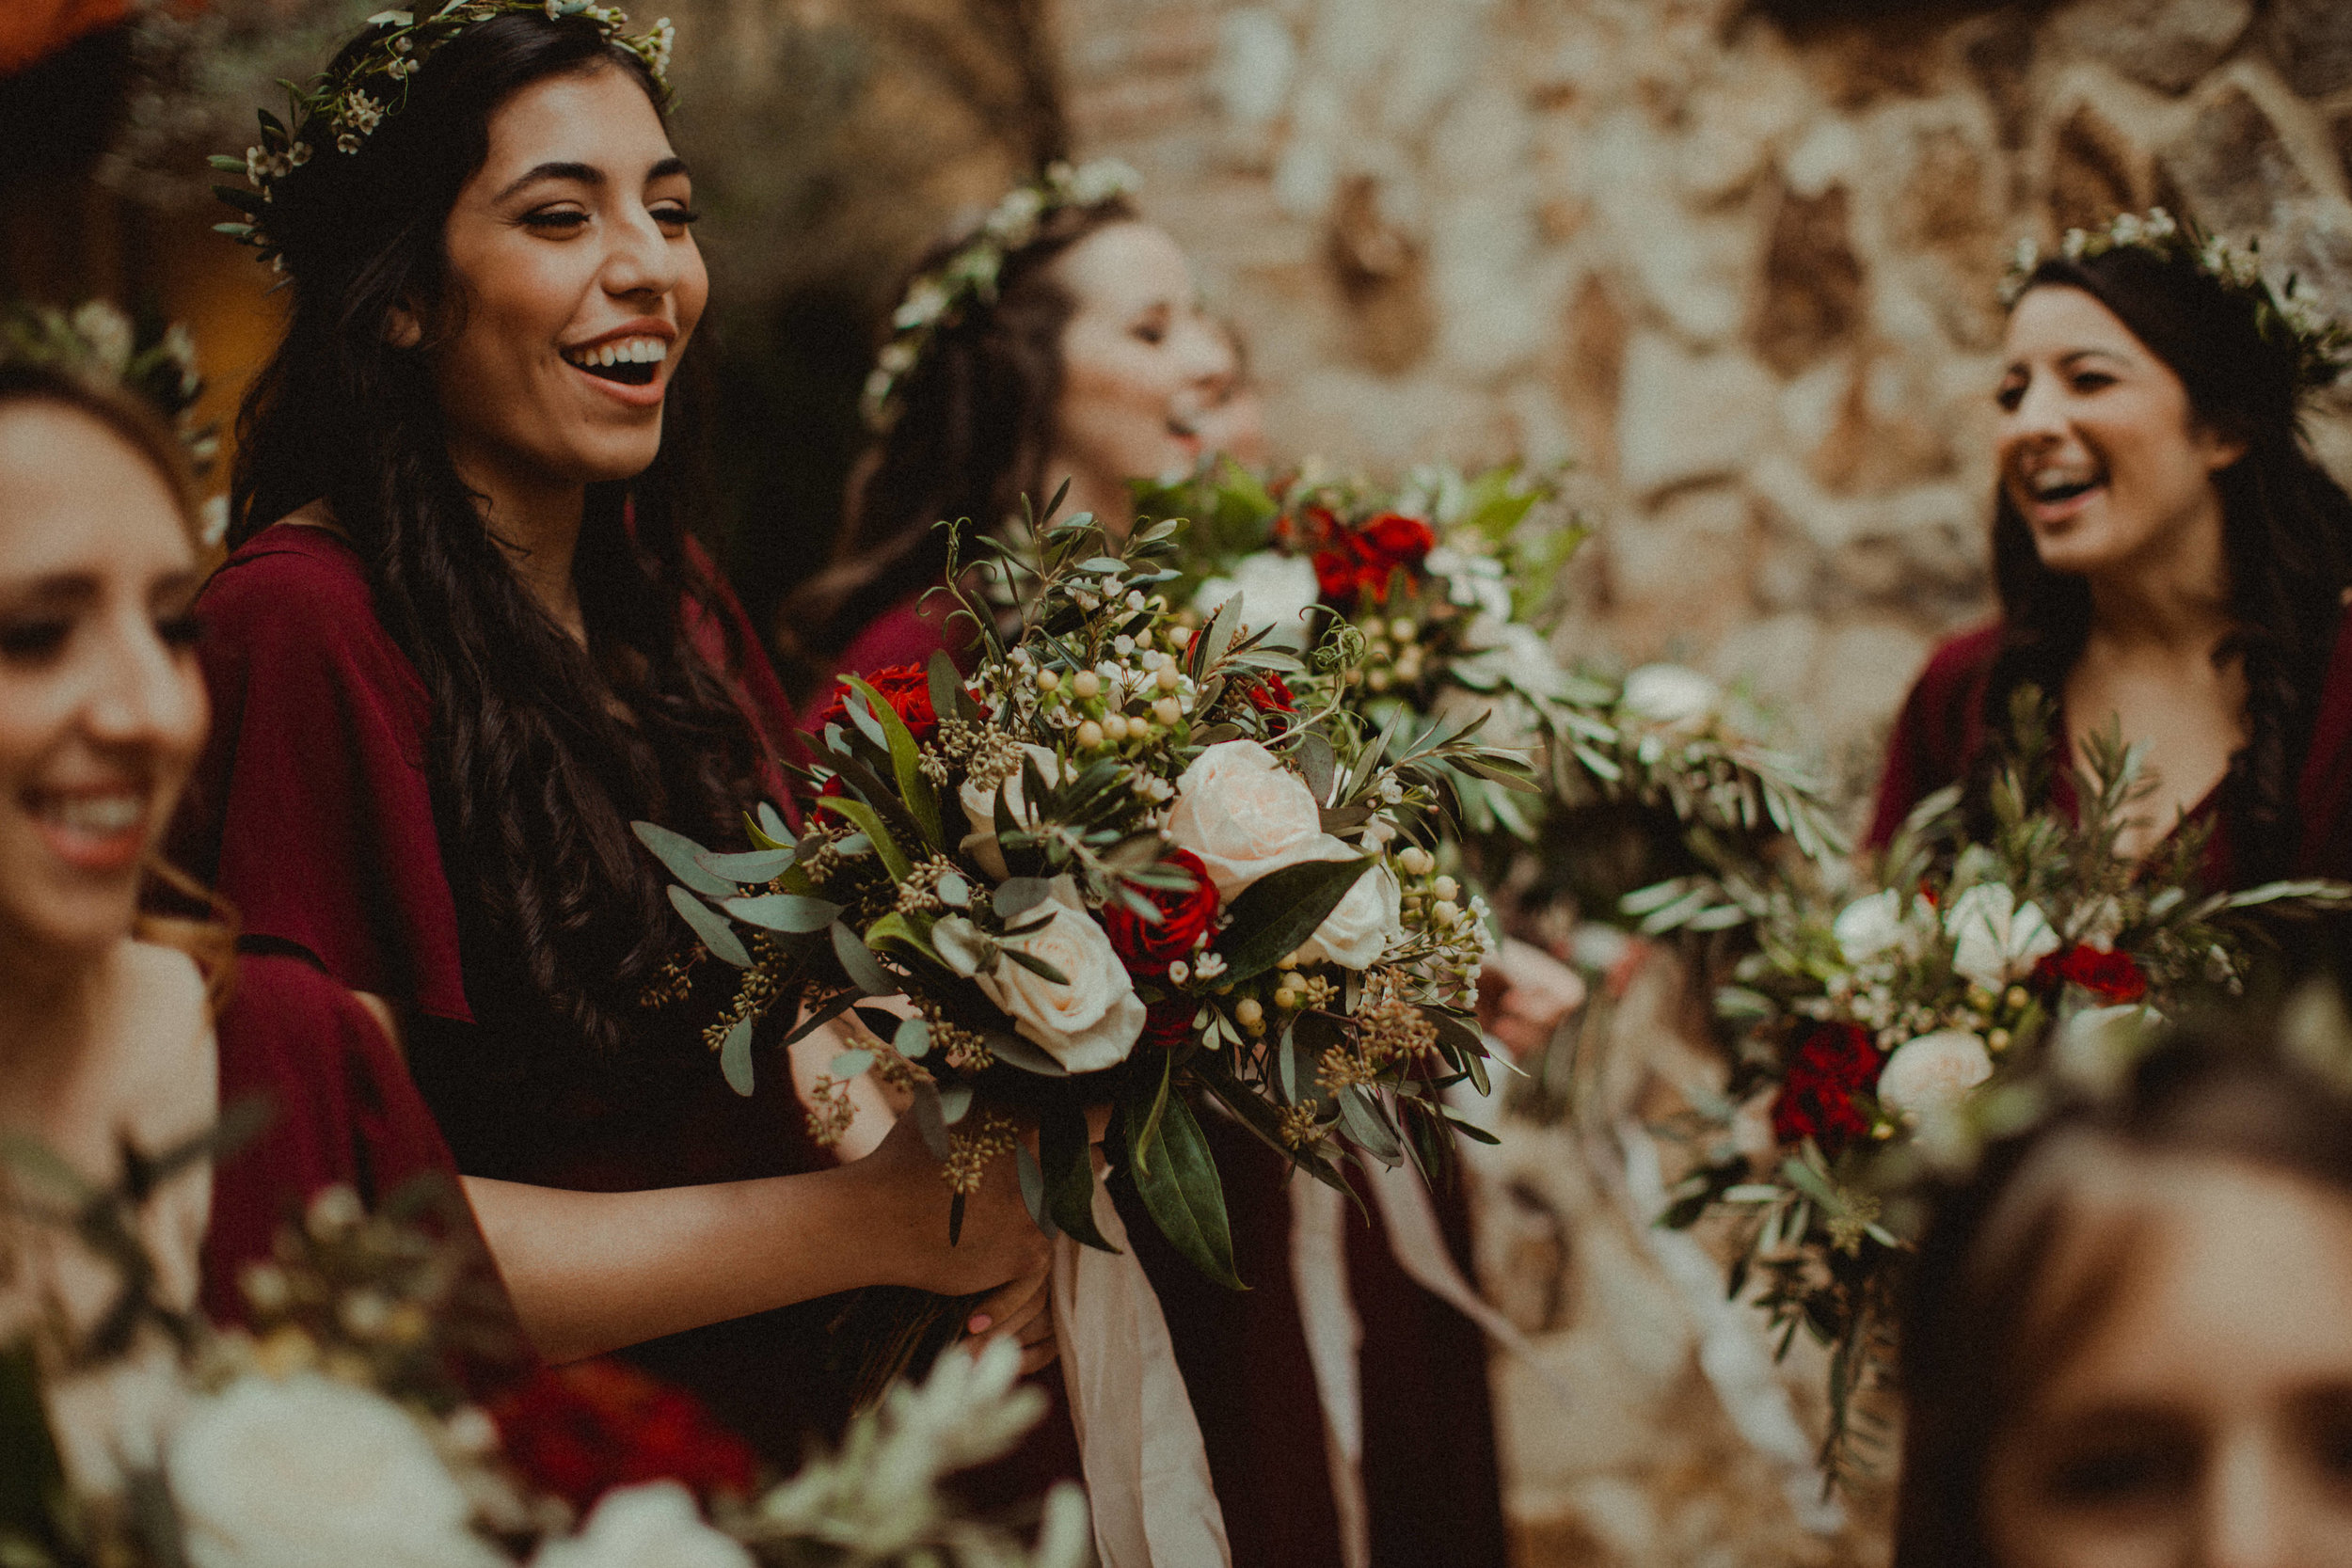 Happy bridesmaids celebrating their newly married friend